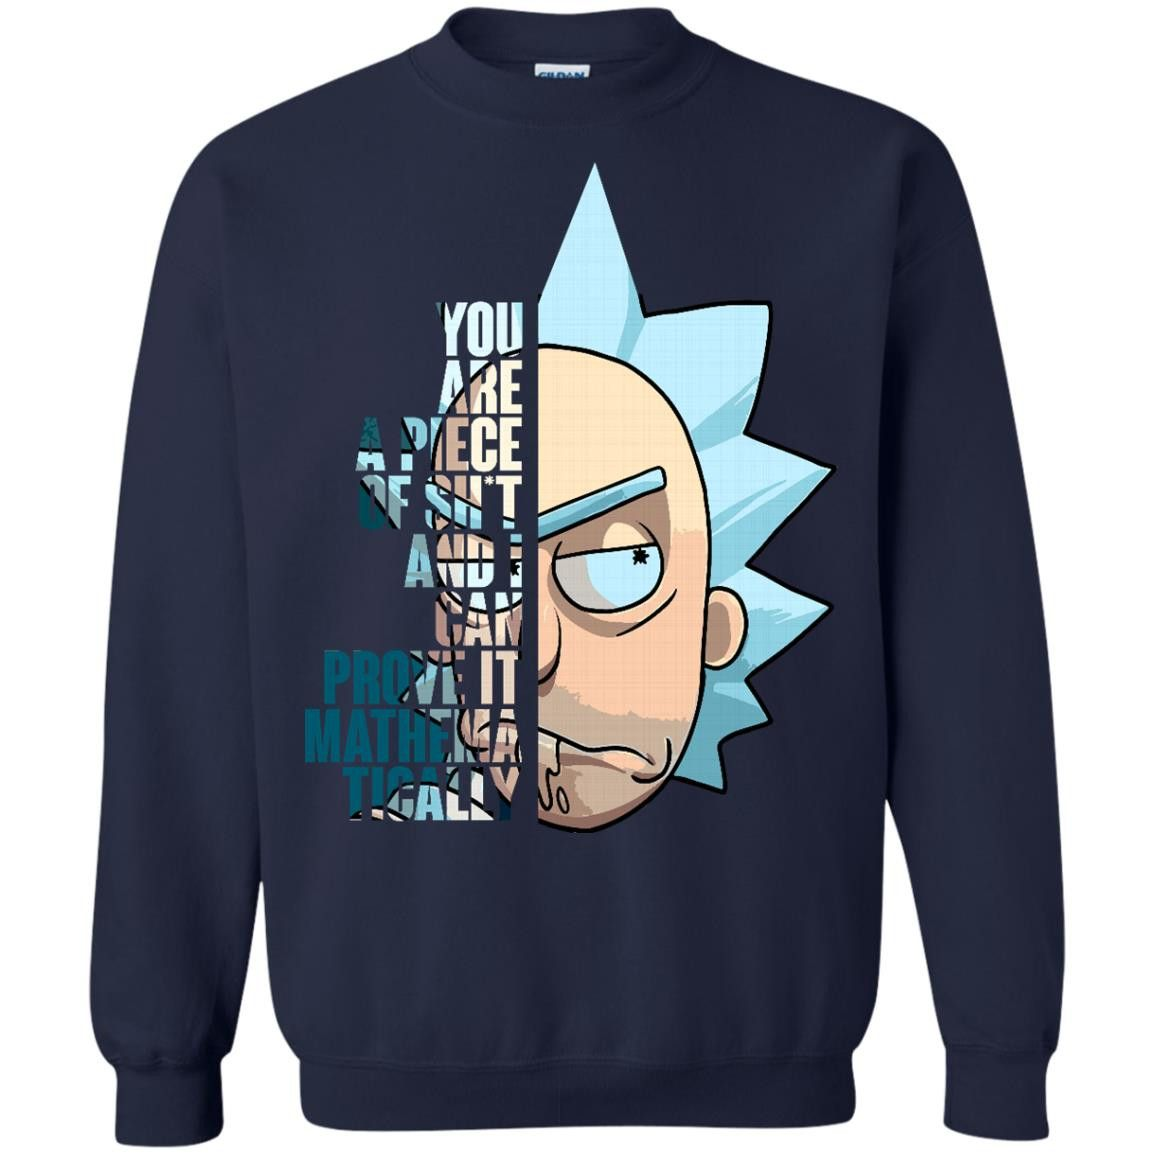 I Prove Piece Are Shit You A Rick It Tshirts Can Of Morty And xnqYpz